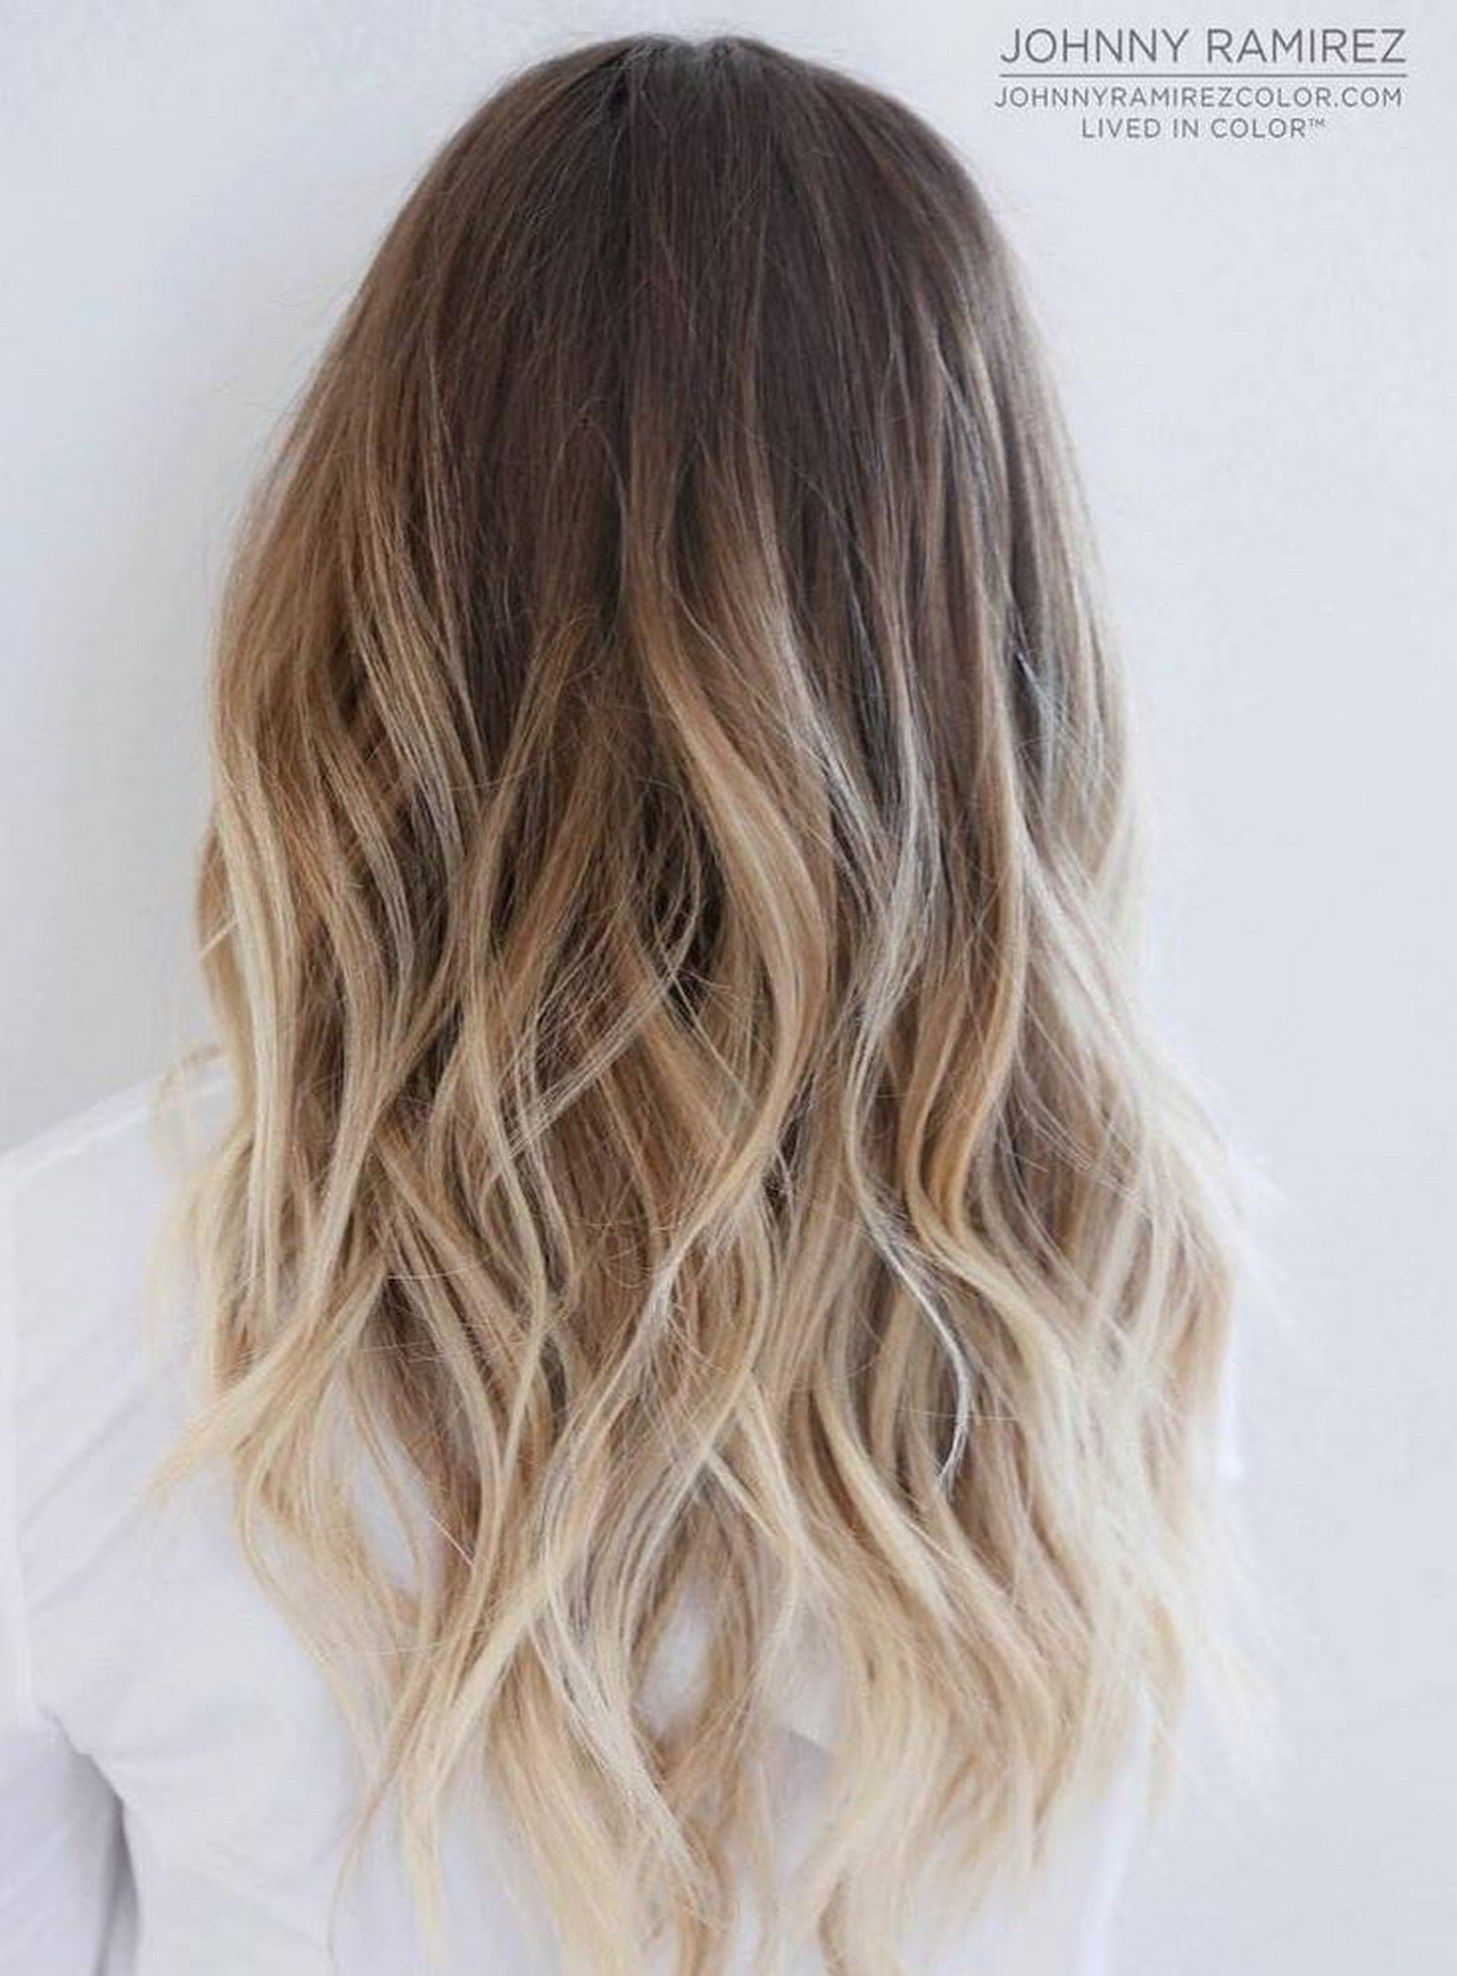 Ombre and balayage hair styles balayage ombre and hair style